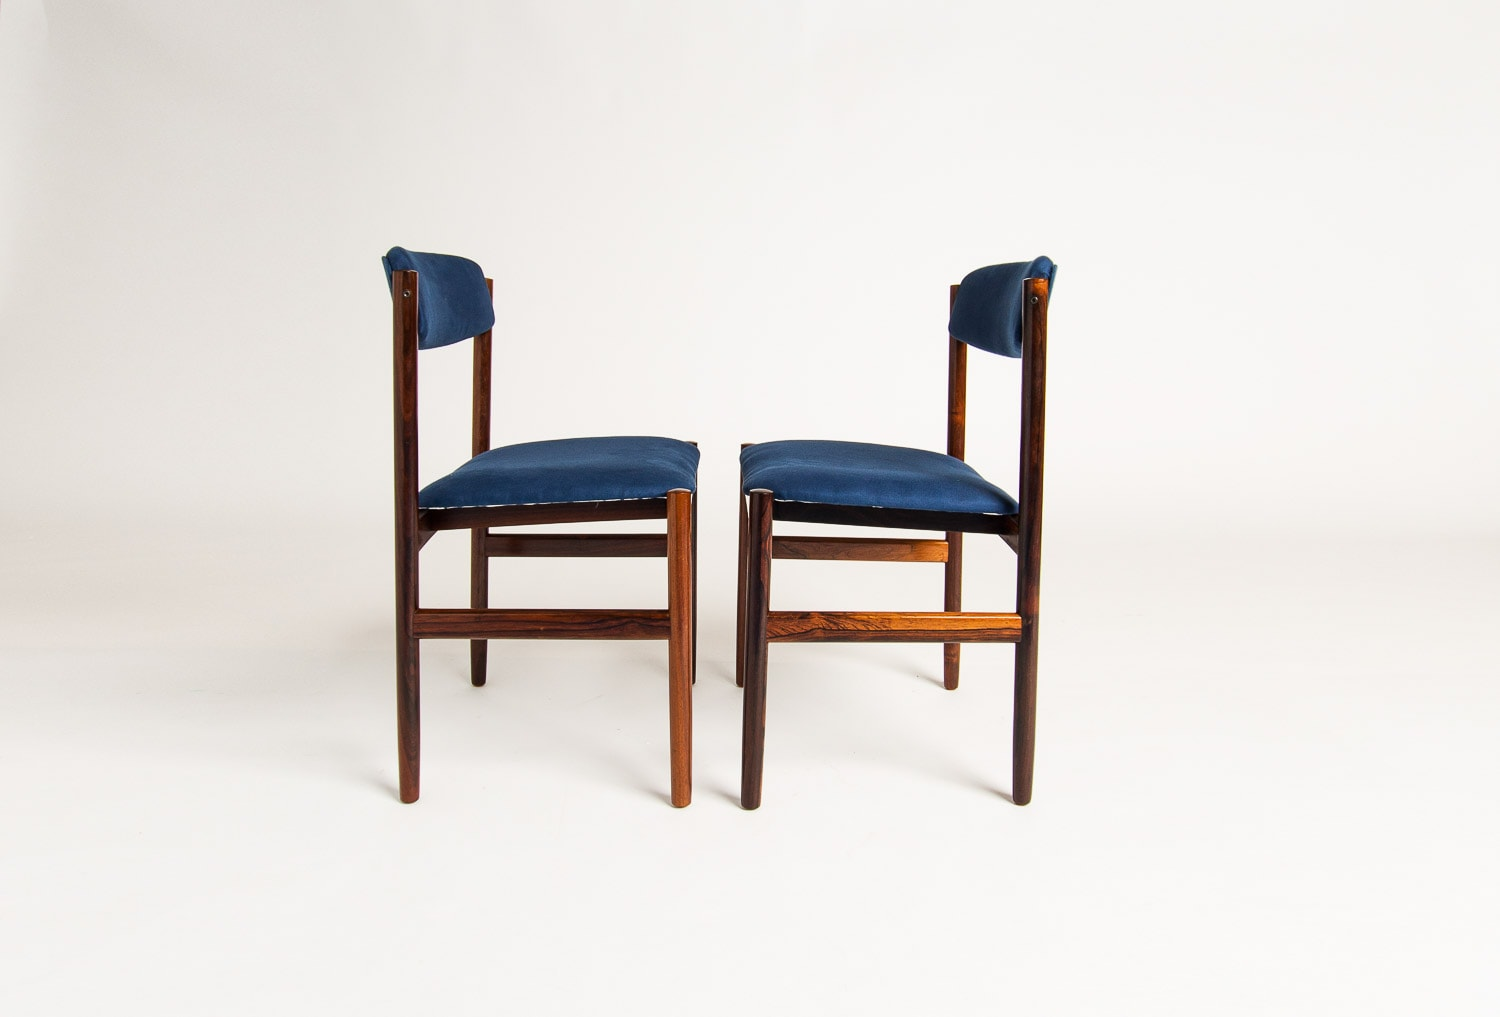 Rosewood dinin g chairs Danish mid centiury 1950's